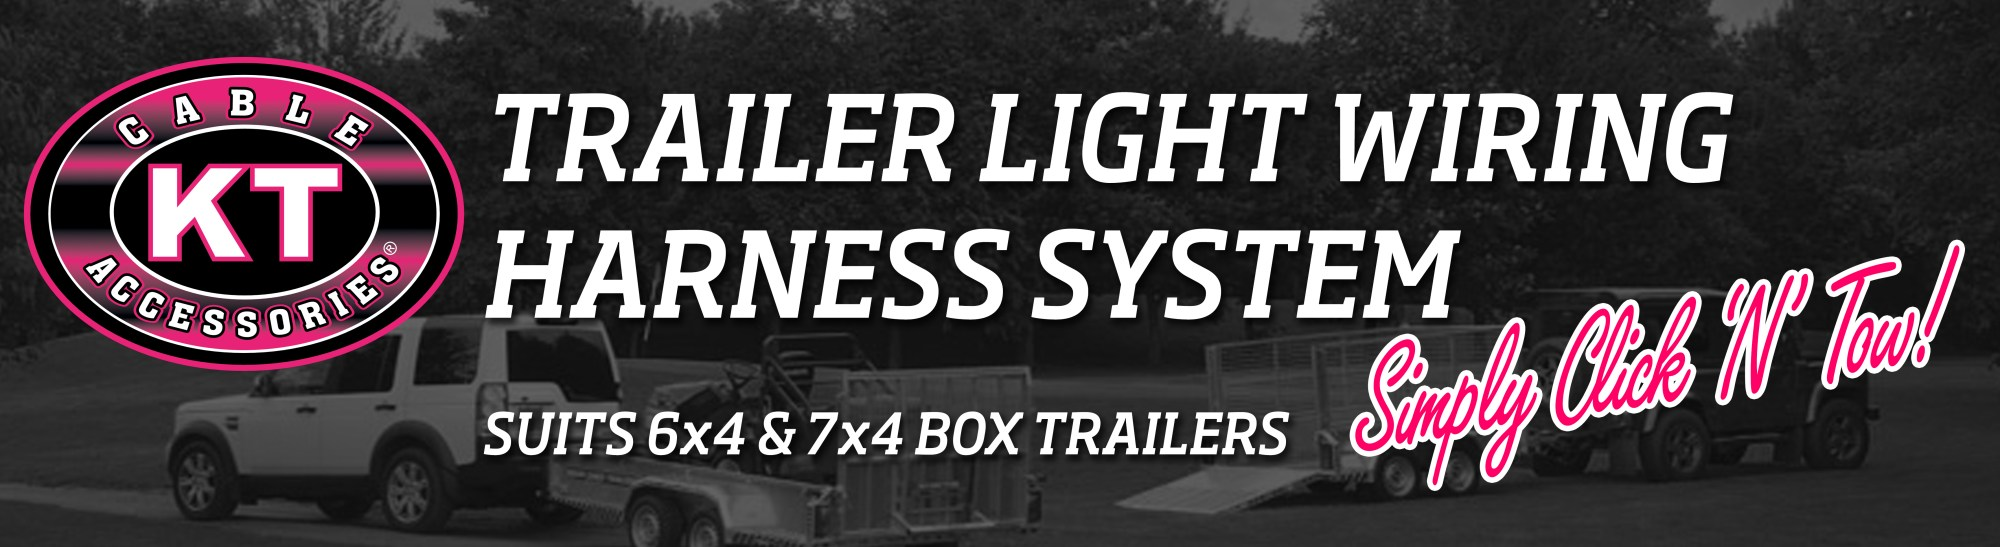 hight resolution of have you ever wanted to wire up your trailer lights without a hassle kt s click n tow trailer light wiring harness is the solution for you